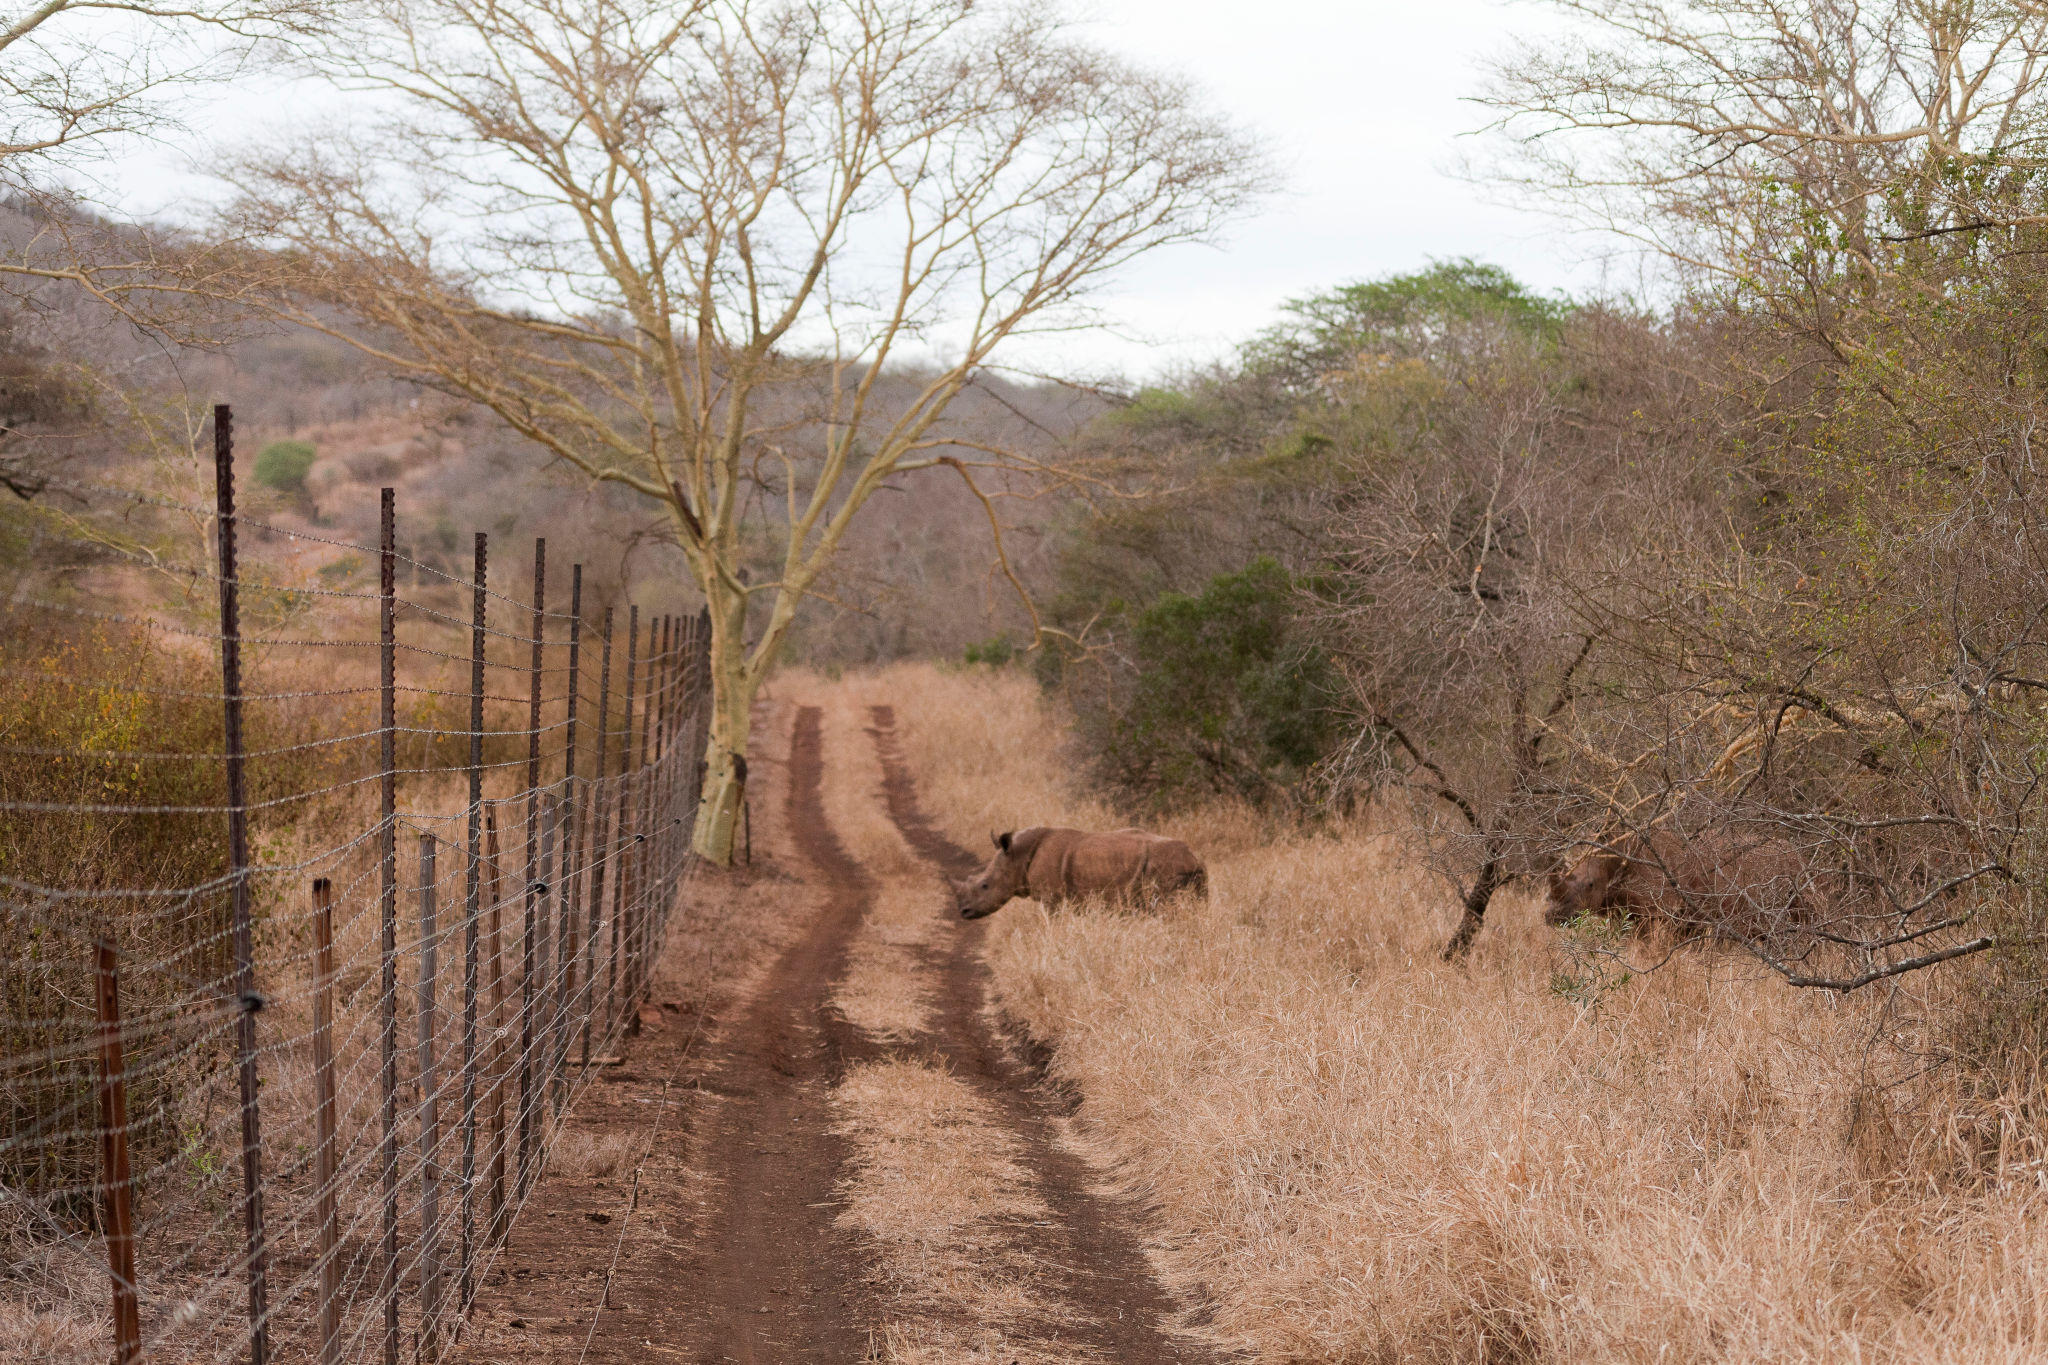 A rhino approaching the fenced perimeter of a conservation area (Photo: Enrico Di Minin).